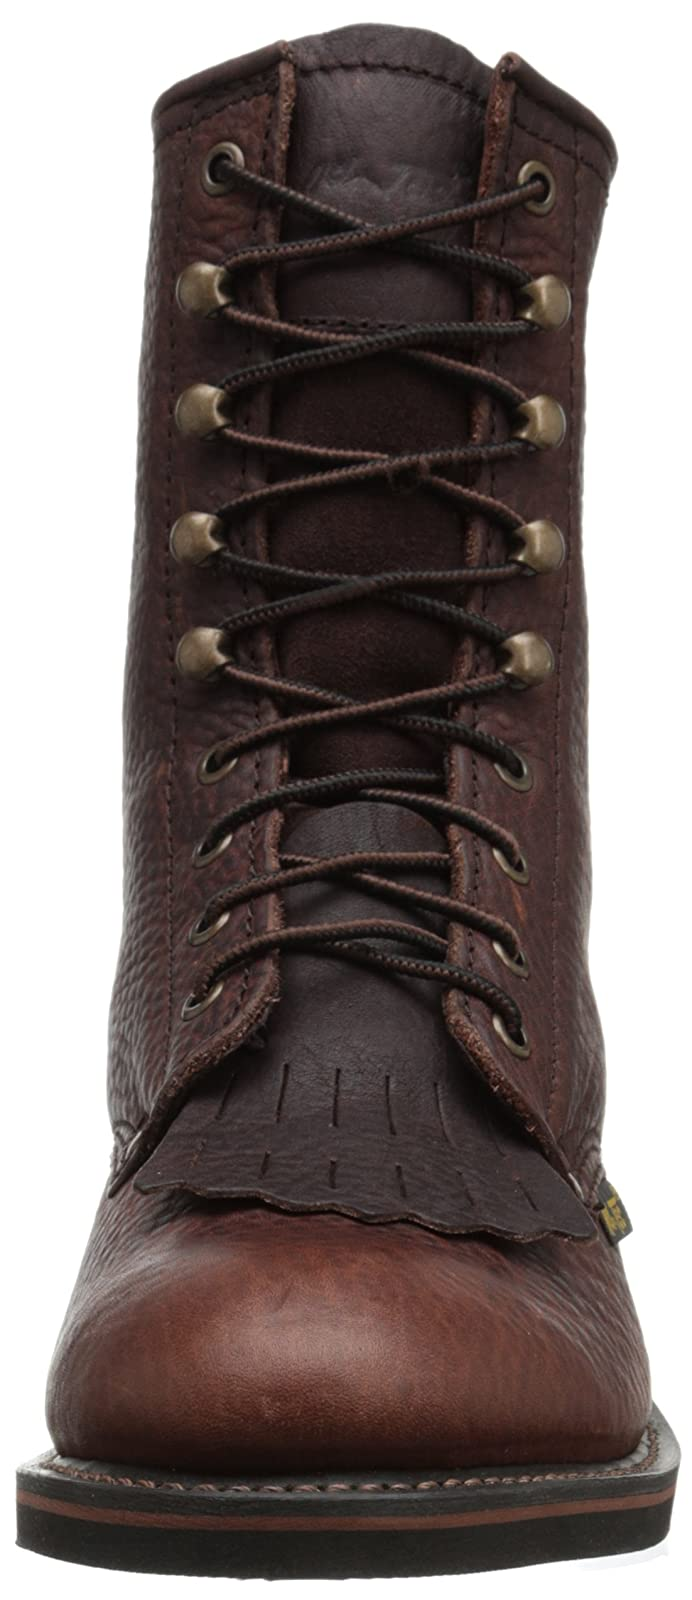 Adtec Men's 9 Inch Packer-M Boot Chestnut 9 M US - 4